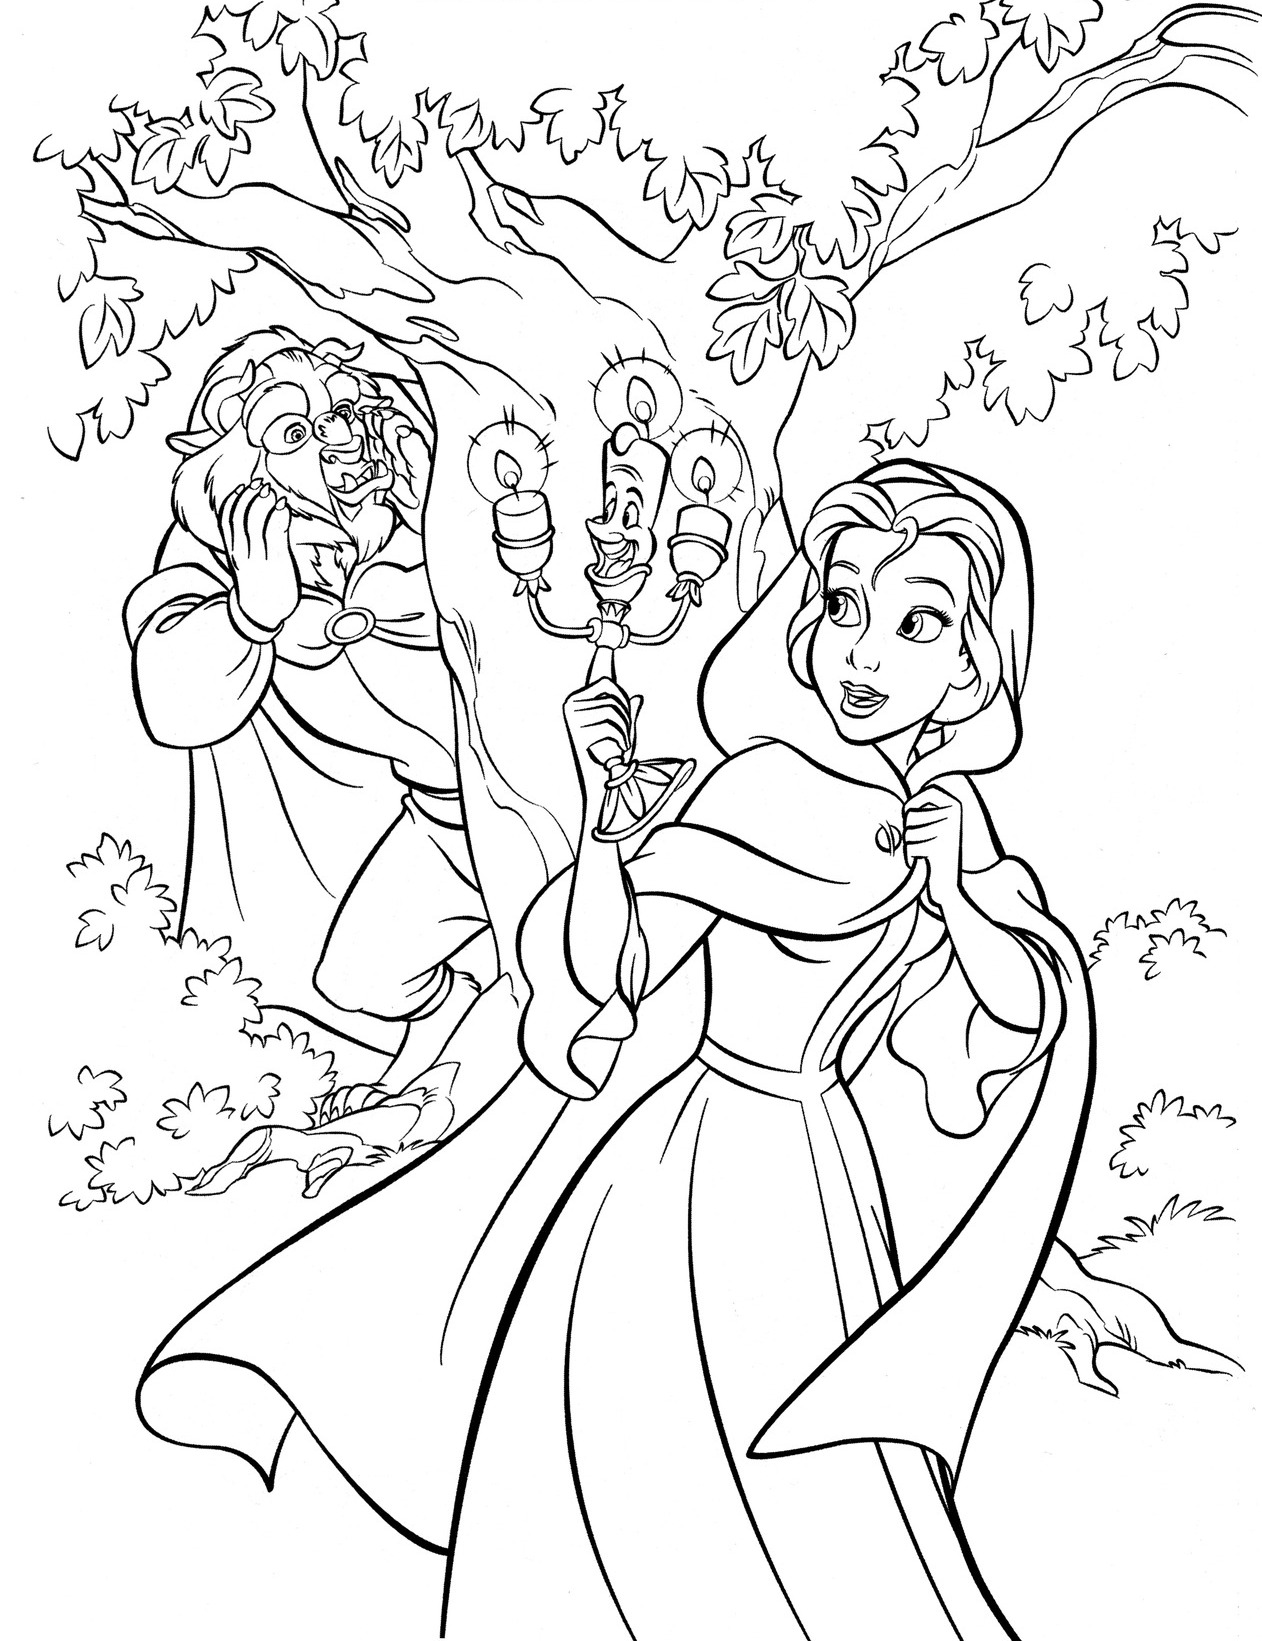 Disney Beauty and the Beast Coloring Pages Free